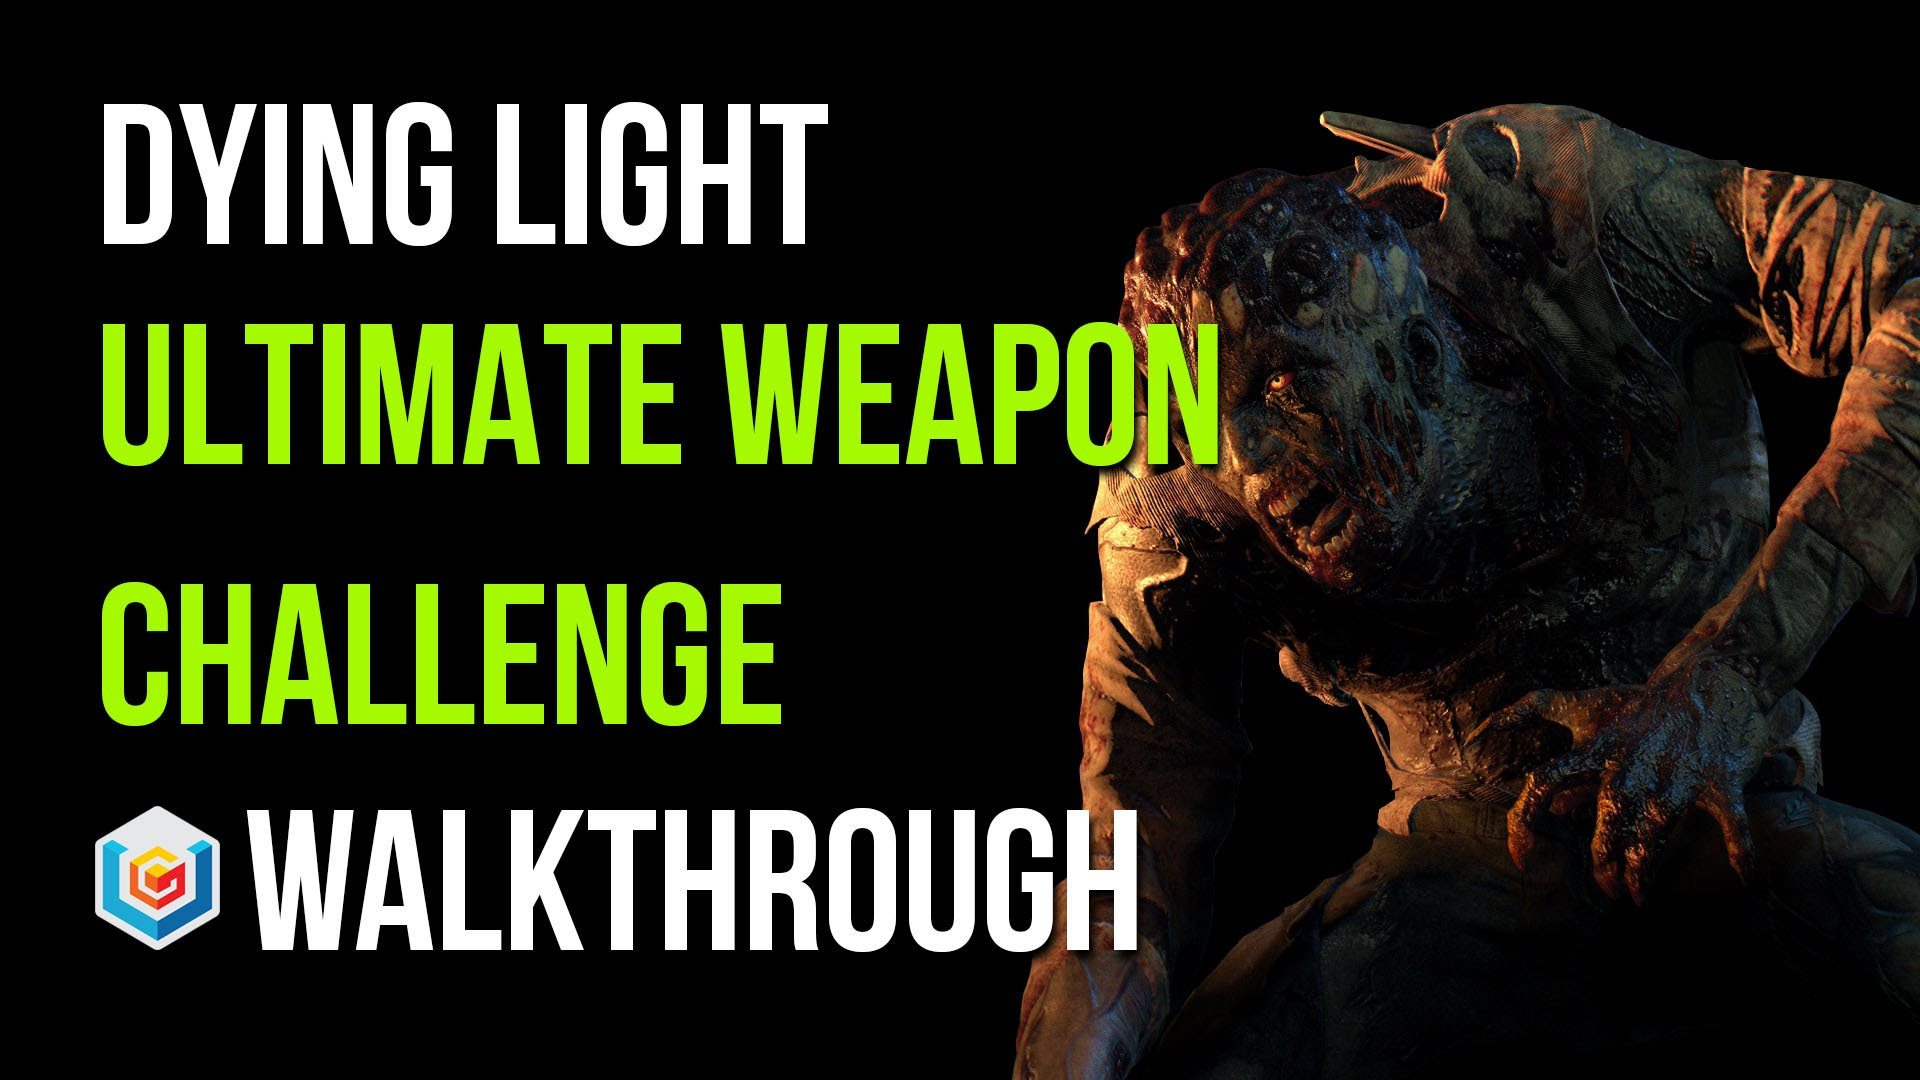 Dying Light Ultimate Weapon Walkthrough - Video Games ...